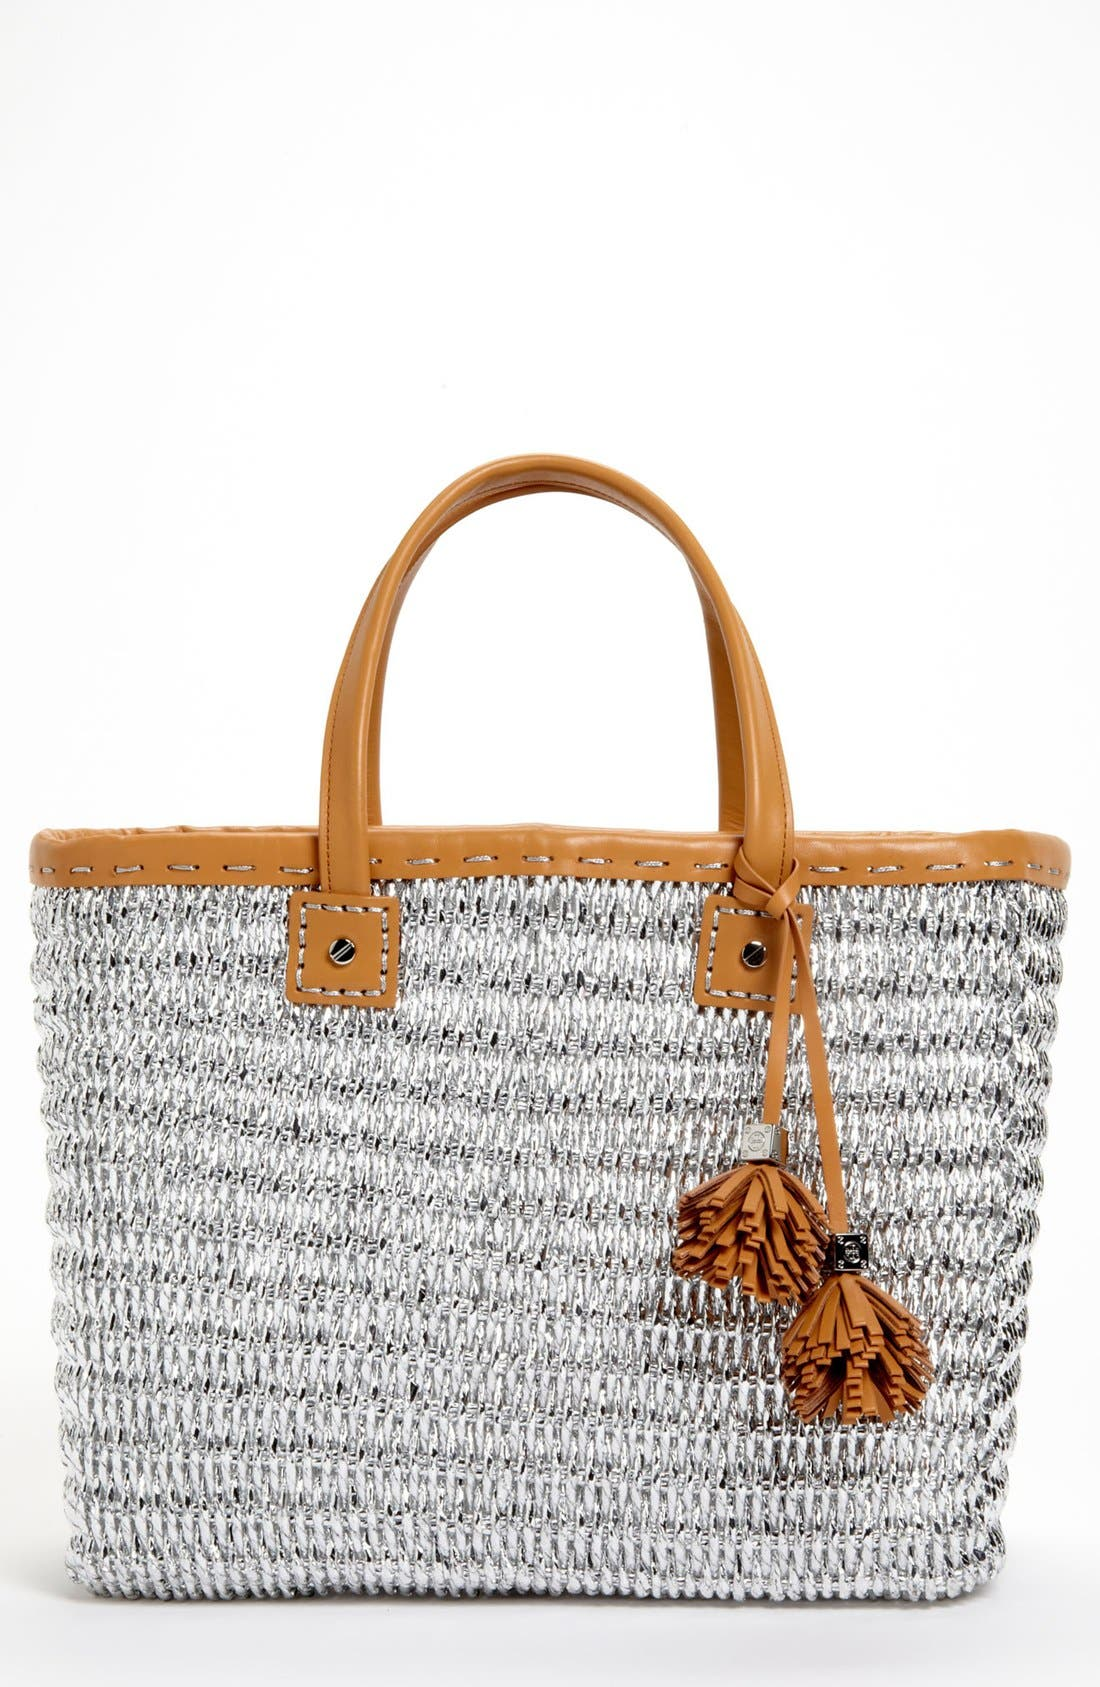 Main Image - Tory Burch Metallic Straw Tote, Large